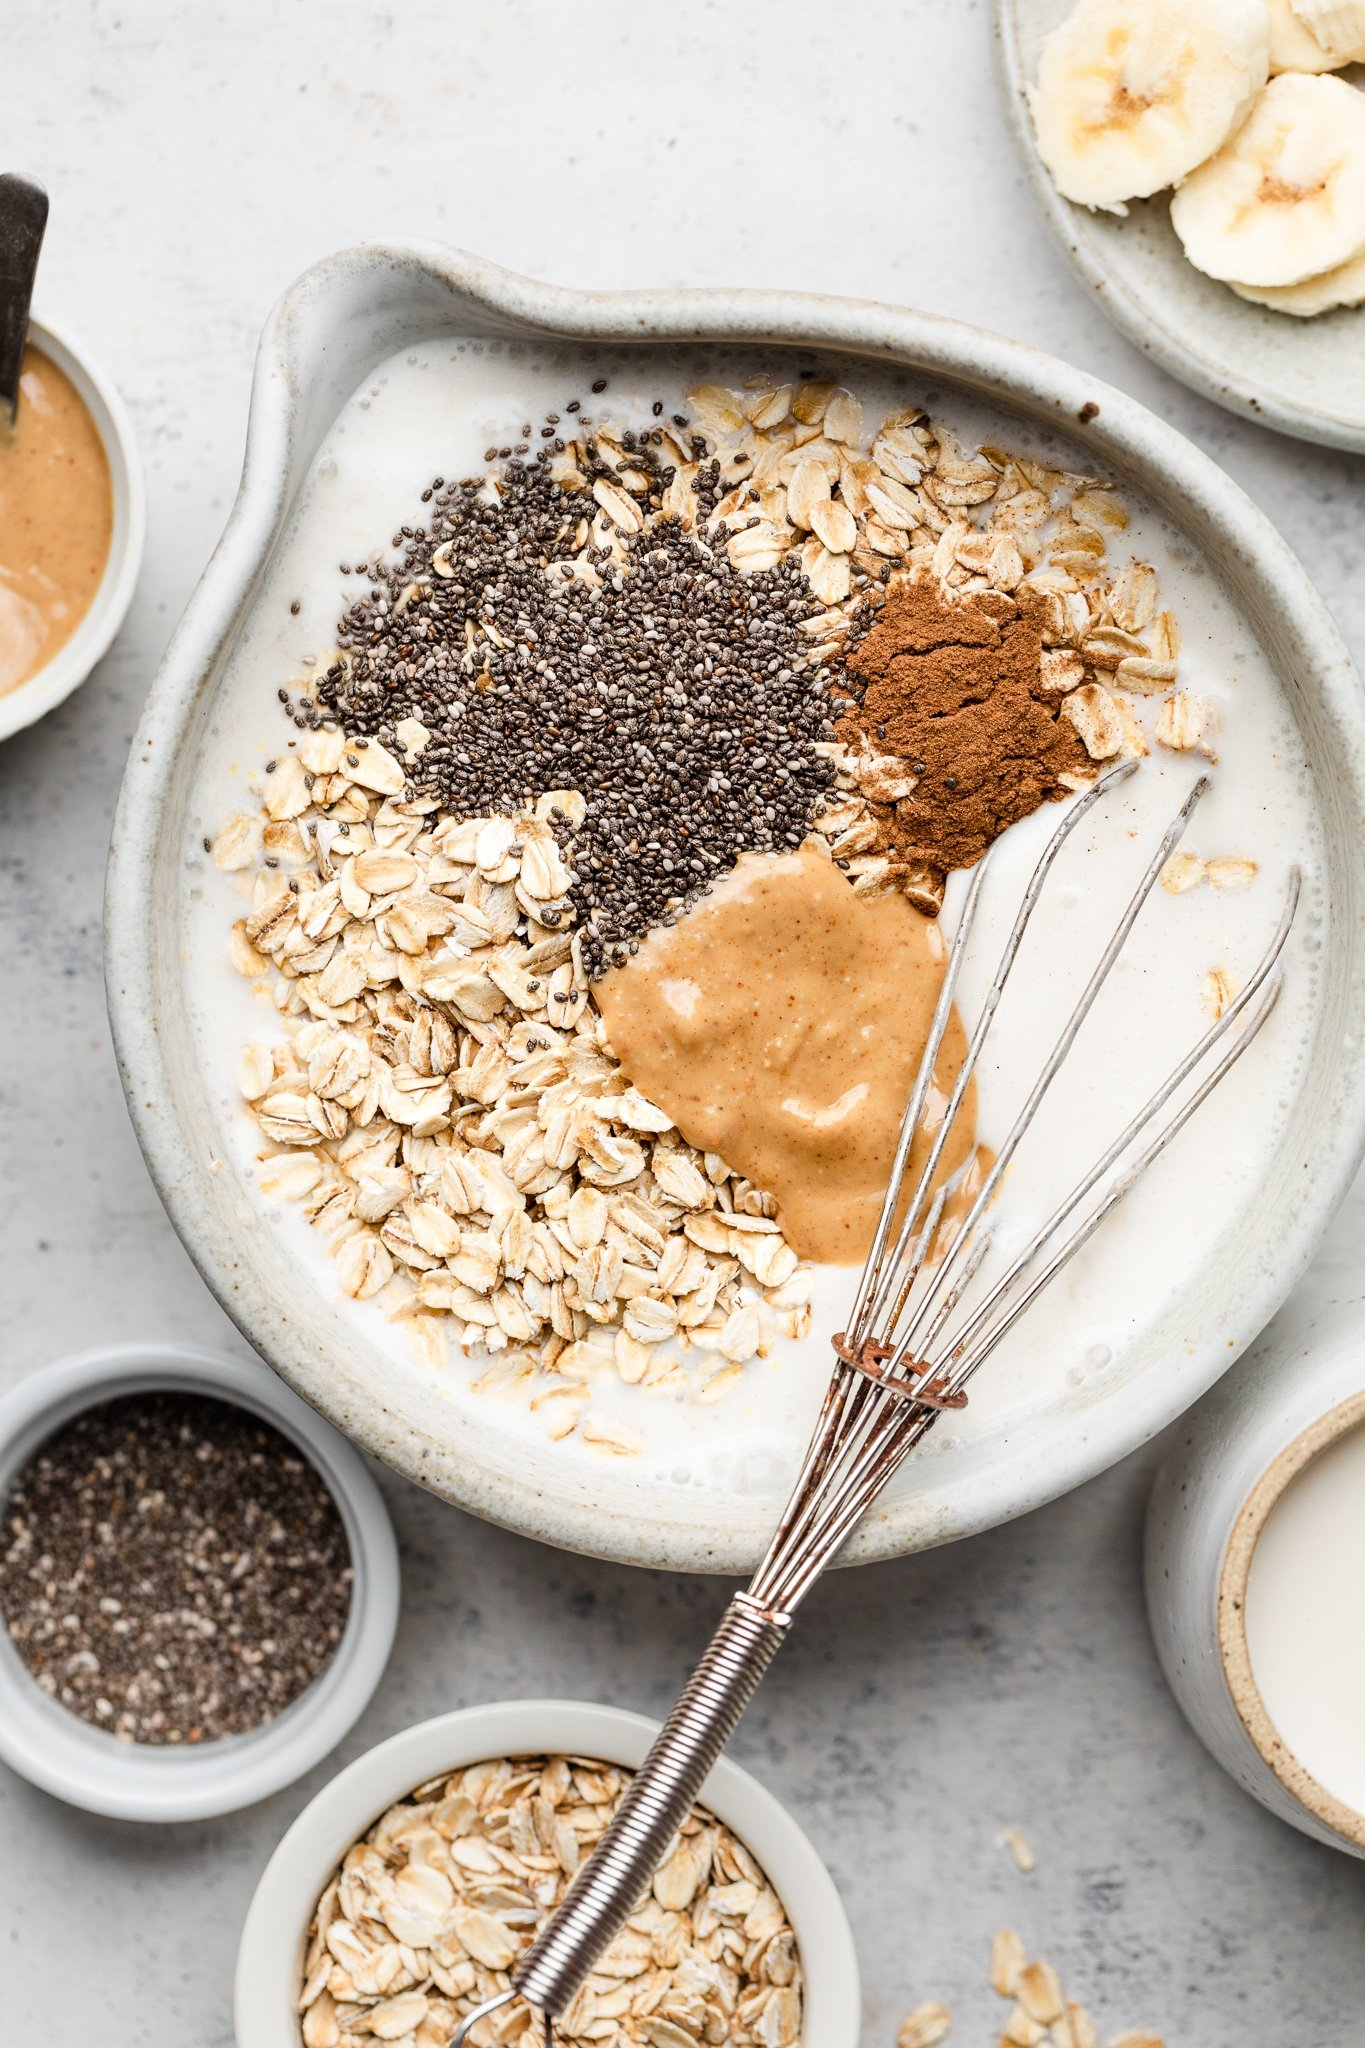 whisking ingredients in a bowl for peanut butter overnight oats